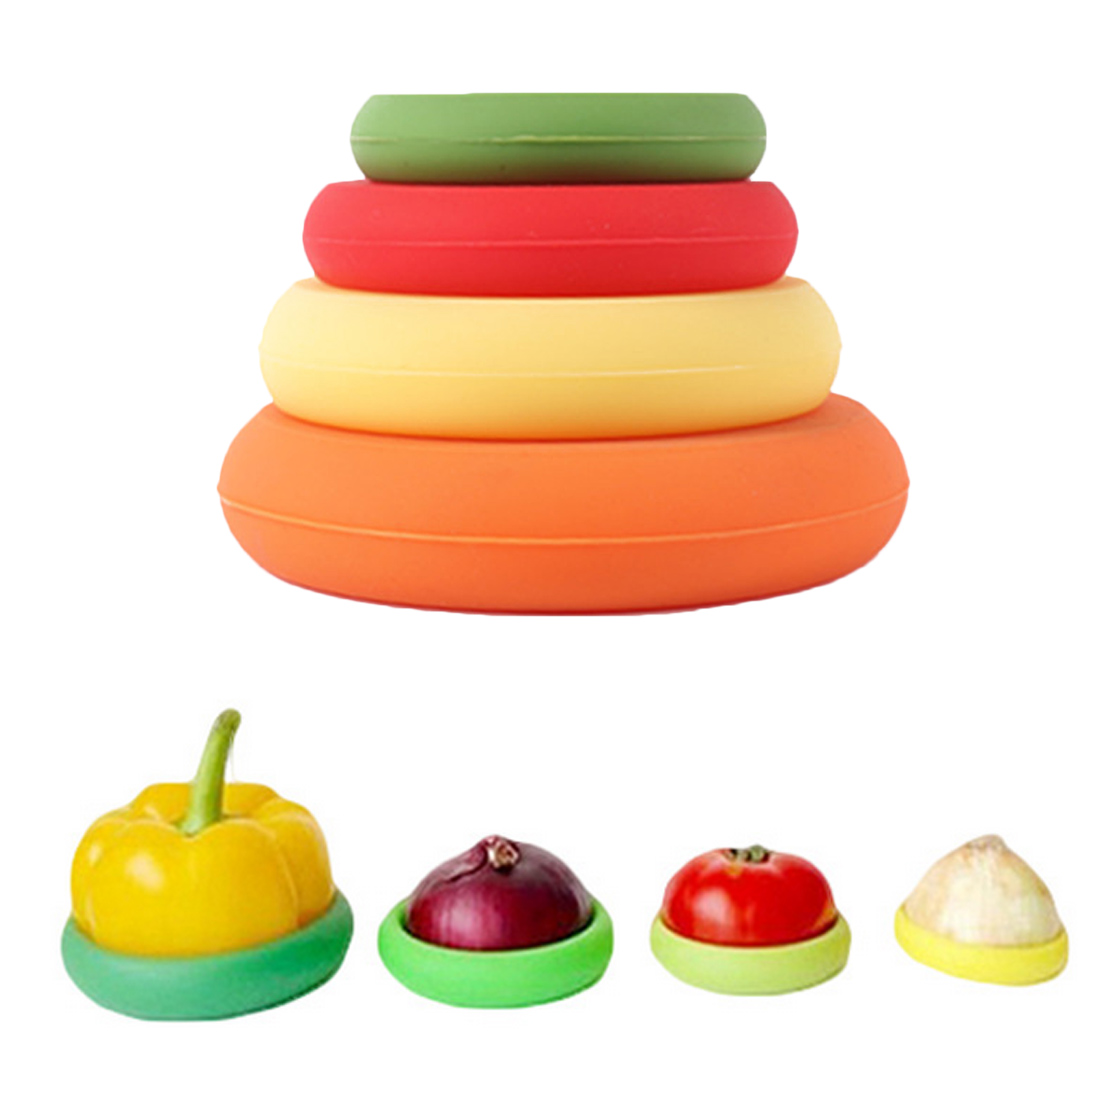 Bowl Pot Seal Cover 4Pcs Reusable Silicone Food Wrap Stretch Fresh Fruits Savers Lids Embracers Food Savers Kitchen Accessories